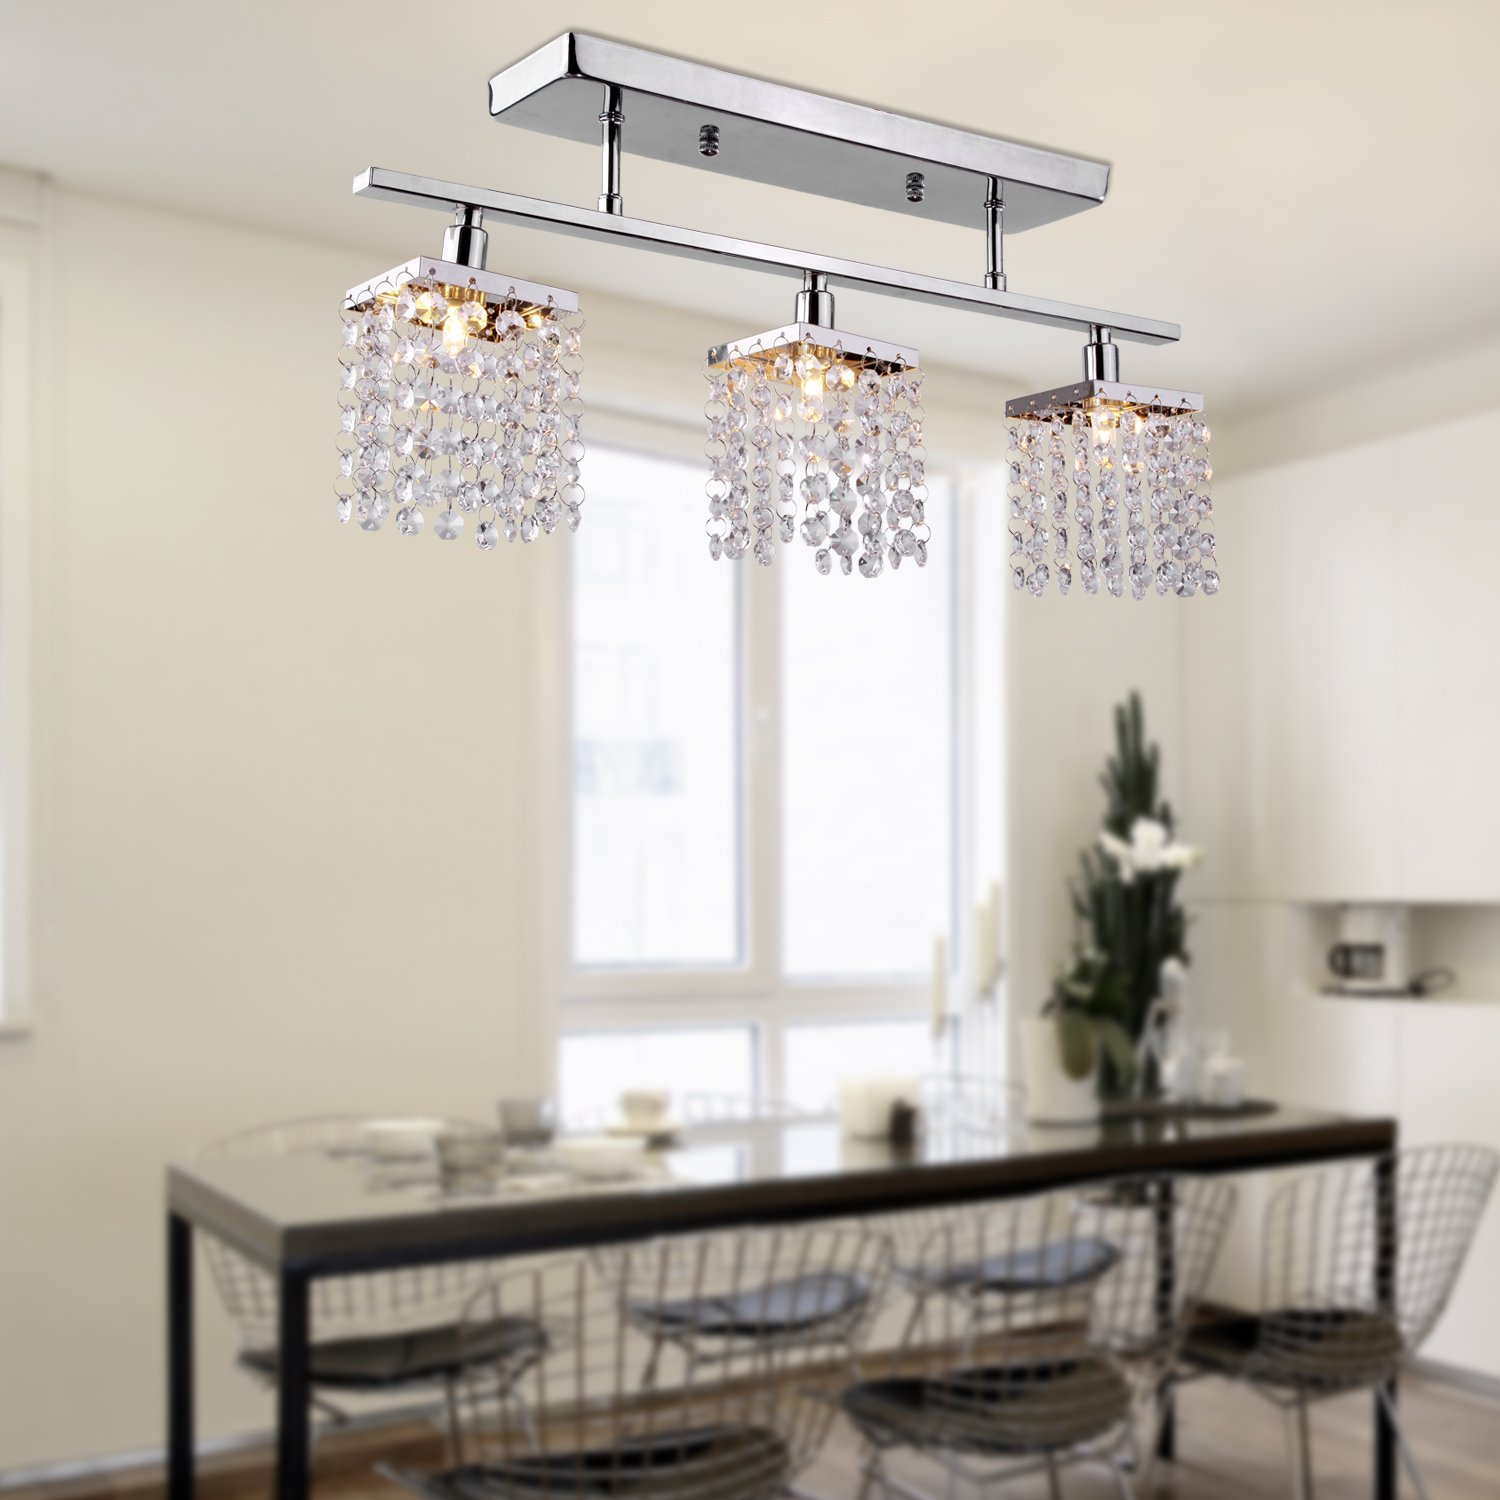 LightInTheBox Chandelier with 3 lights in Crystal Flush Mount Modern  Ceiling Light Fixture for Entry  Dining Room  Bedroom   Candle Chandeliers    Amazon com. LightInTheBox Chandelier with 3 lights in Crystal Flush Mount